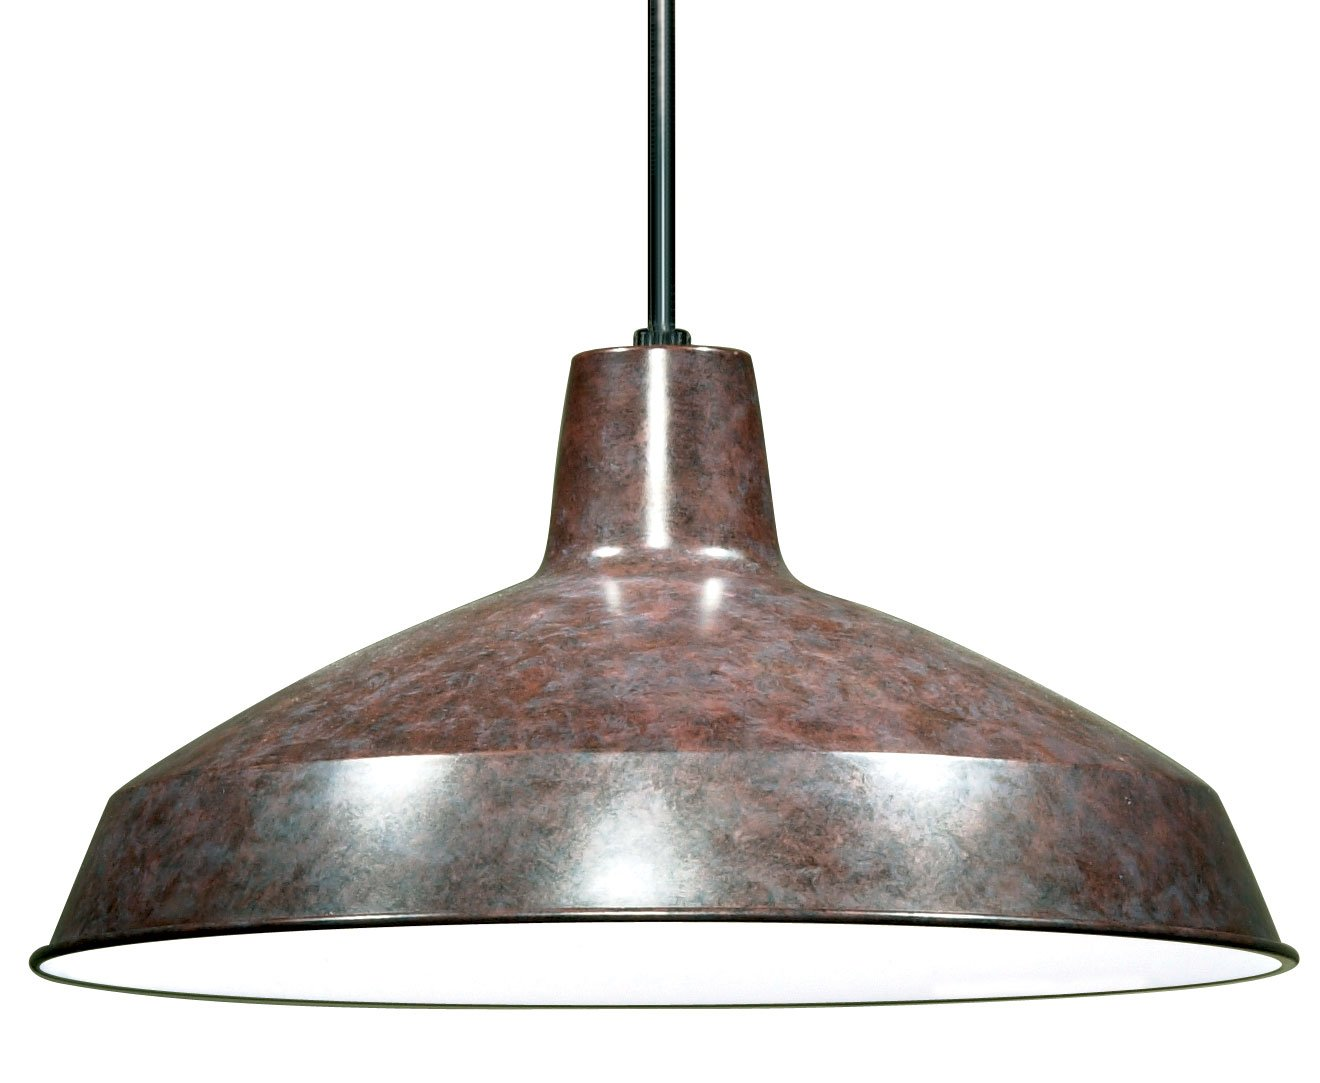 Nuvo lighting sf76662 warehouse shade old bronze ceiling pendant nuvo lighting sf76662 warehouse shade old bronze ceiling pendant fixtures amazon aloadofball Gallery